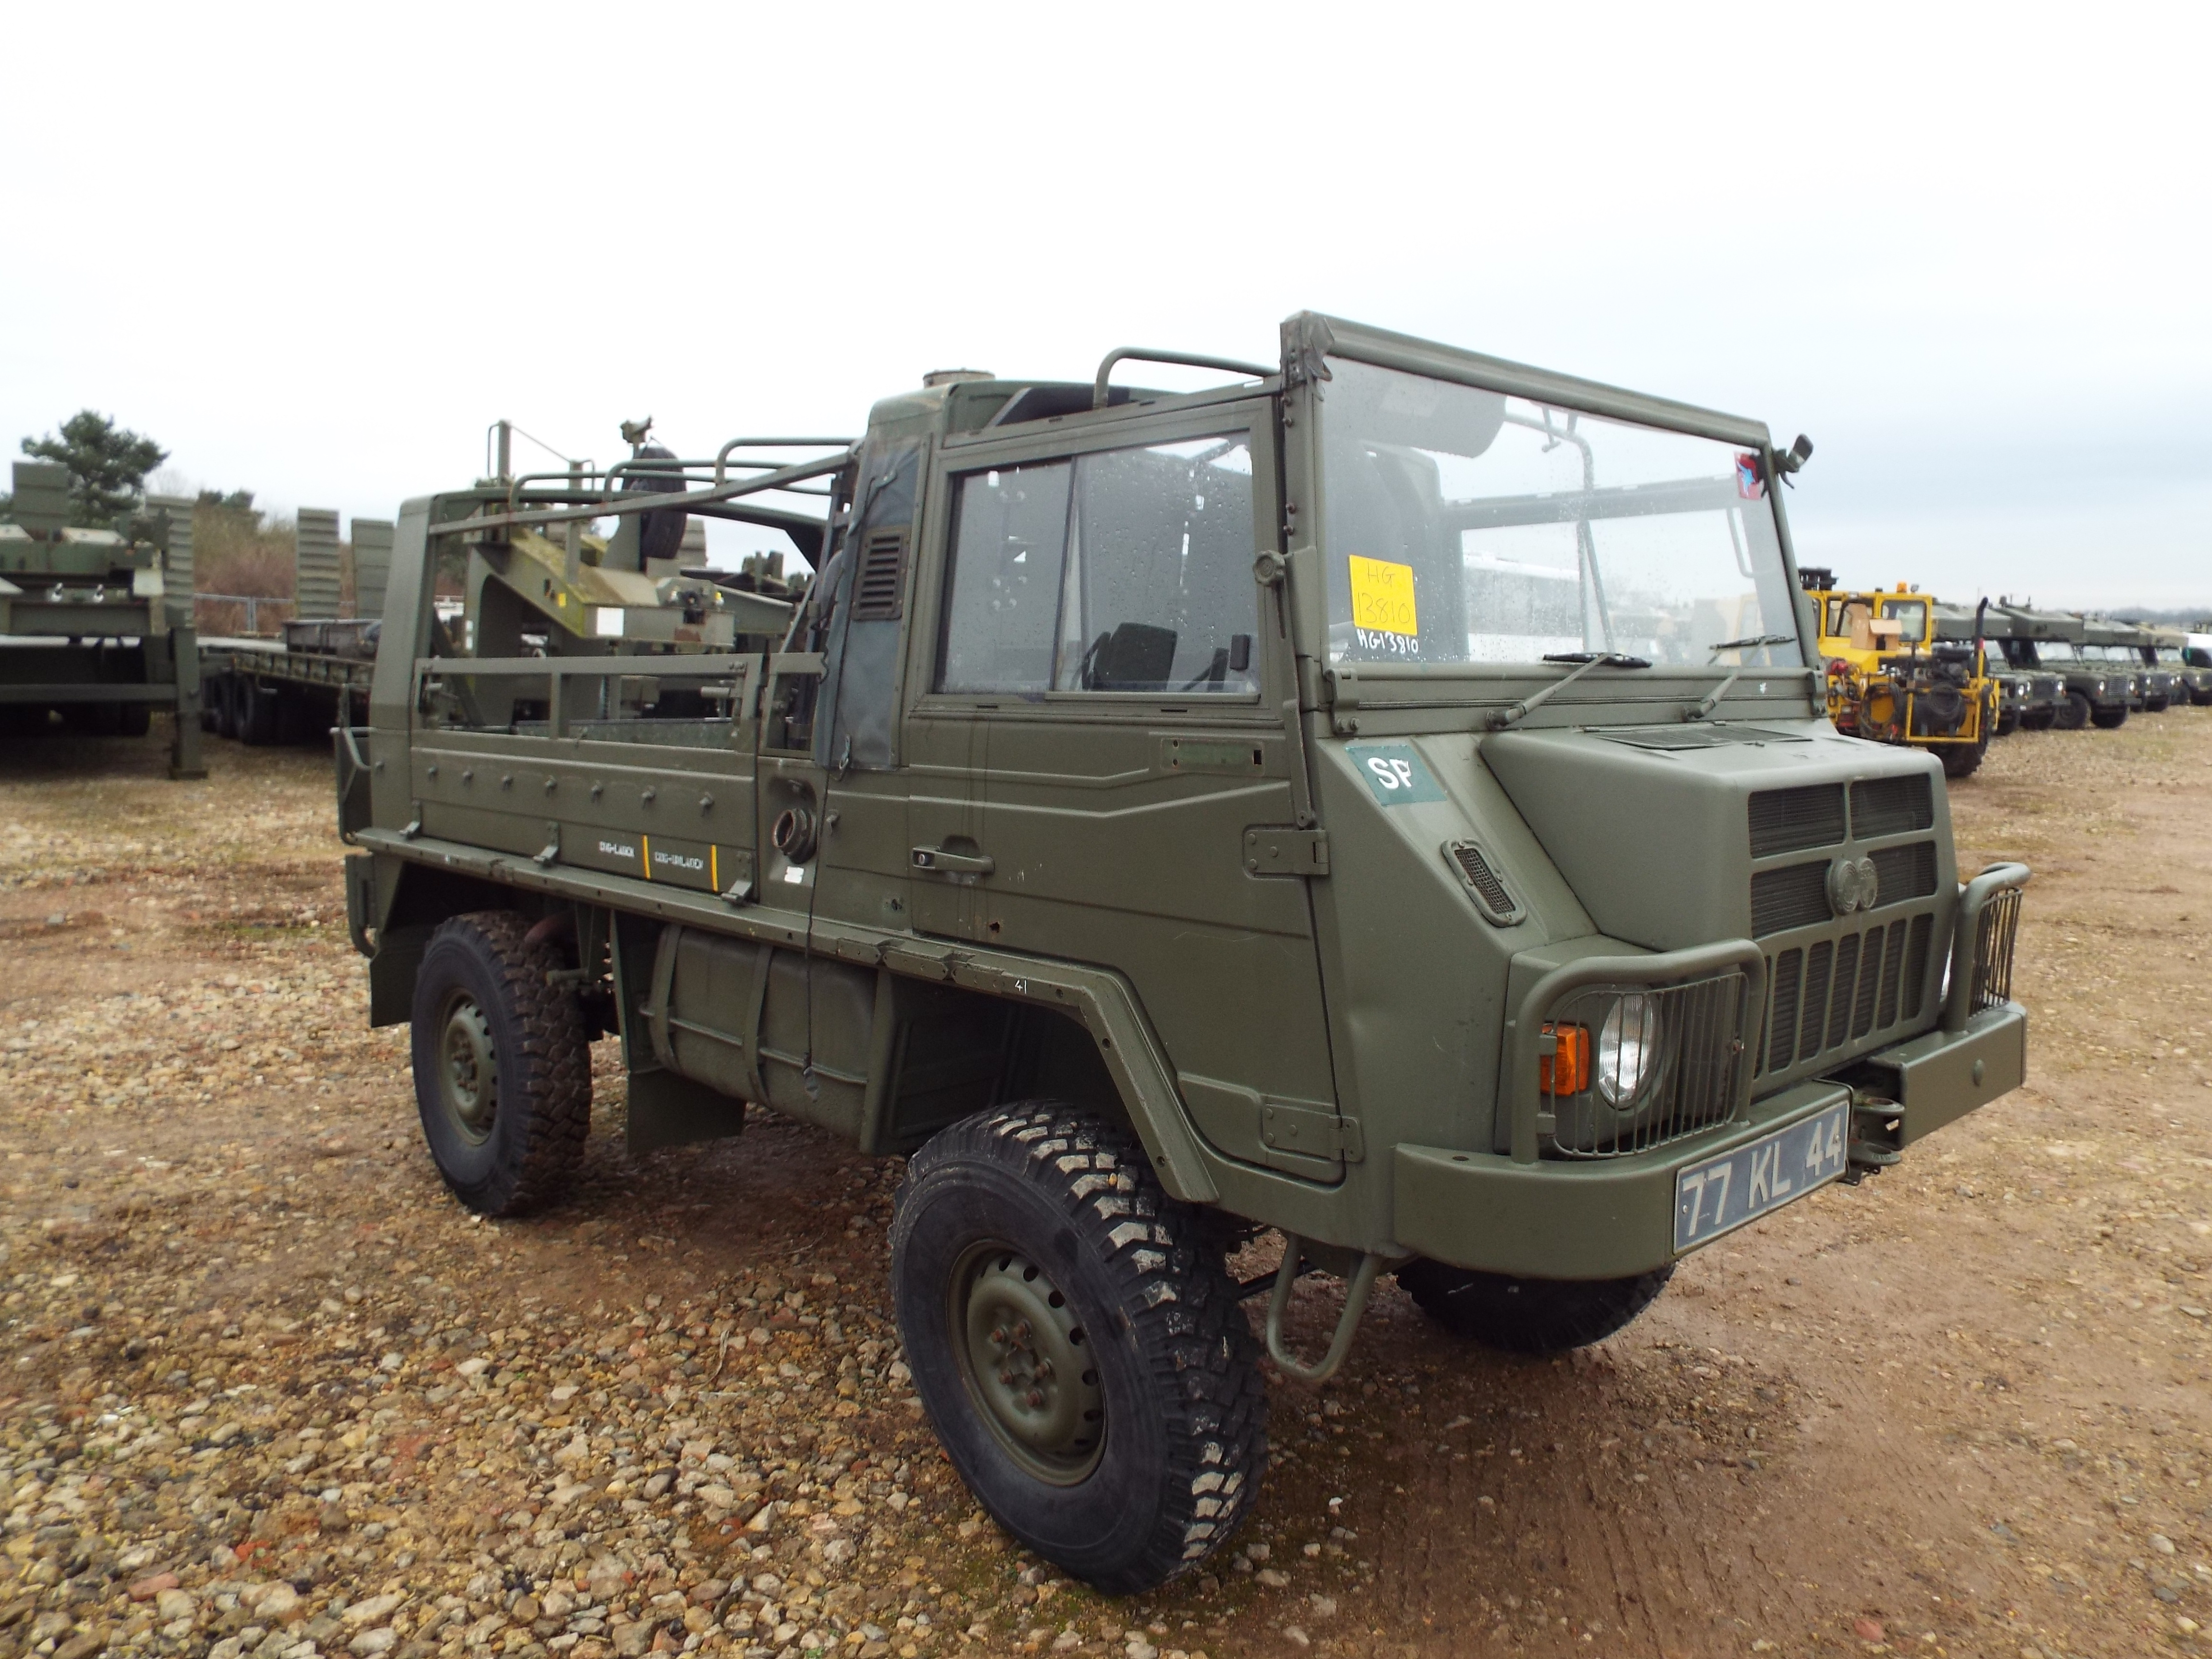 Lot 13597 - Military Specification Pinzgauer 4X4 Soft Top